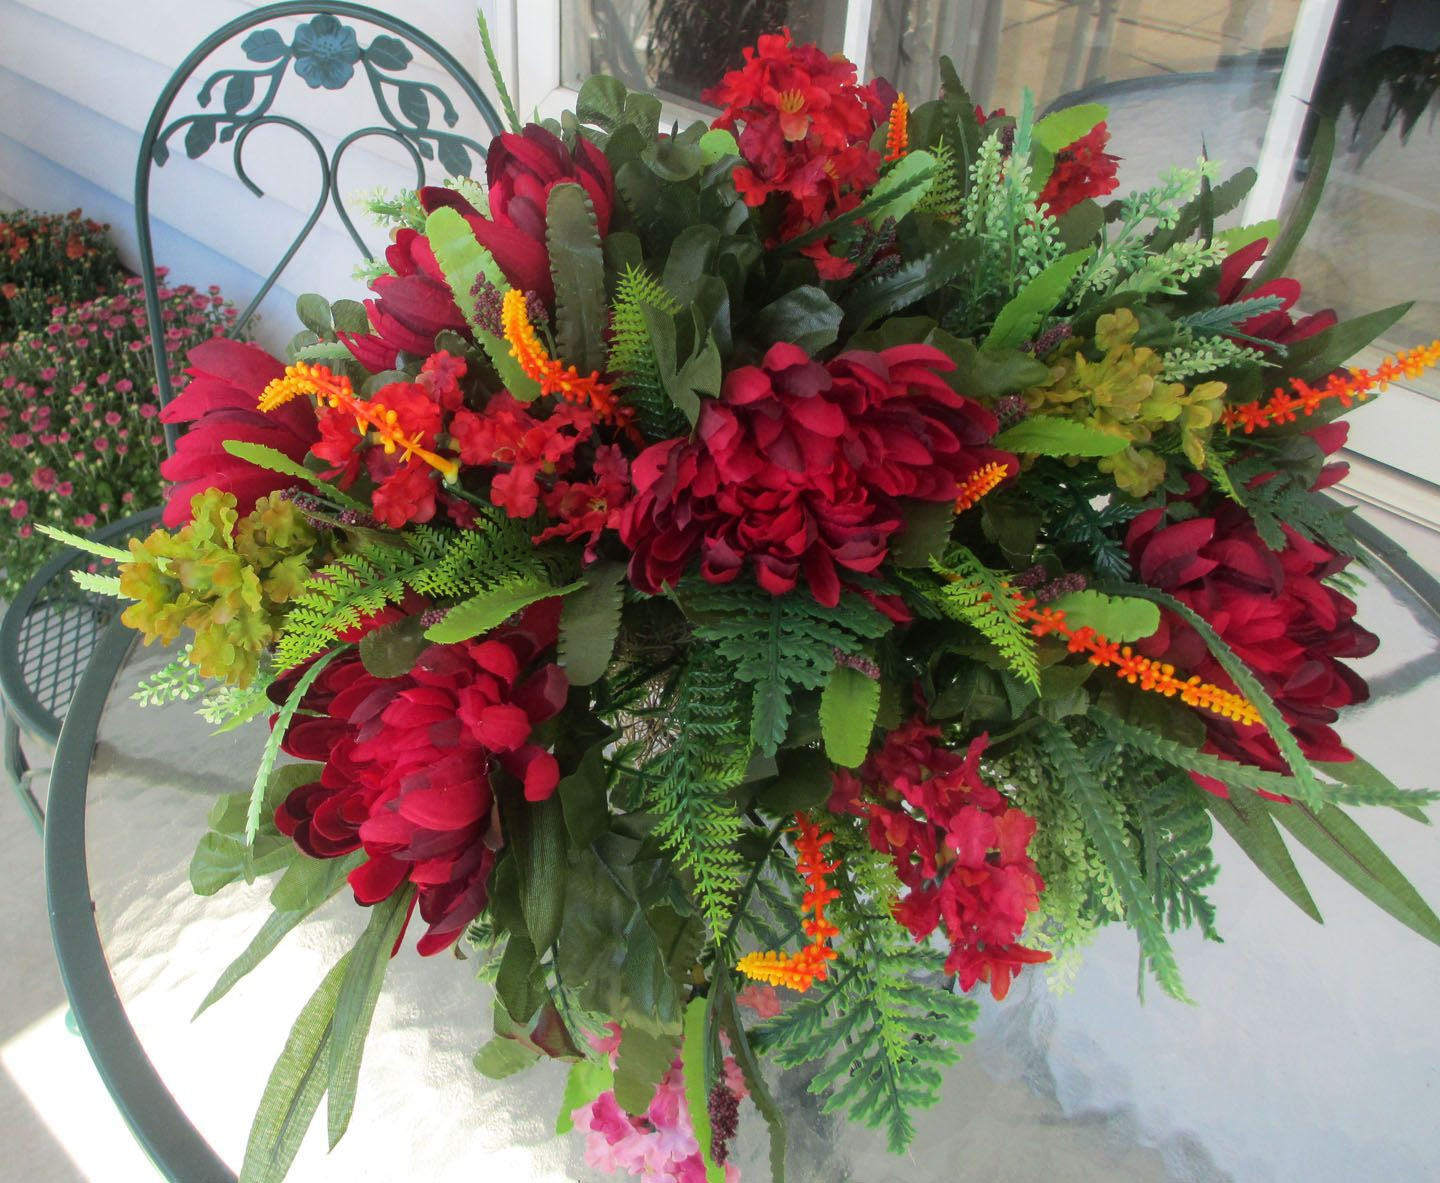 cemetery vase inserts of cemetery floral arrangements www topsimages com in cemetery flower arrangements silk flower cemetery arrangement jpg 1440x1183 cemetery floral arrangements